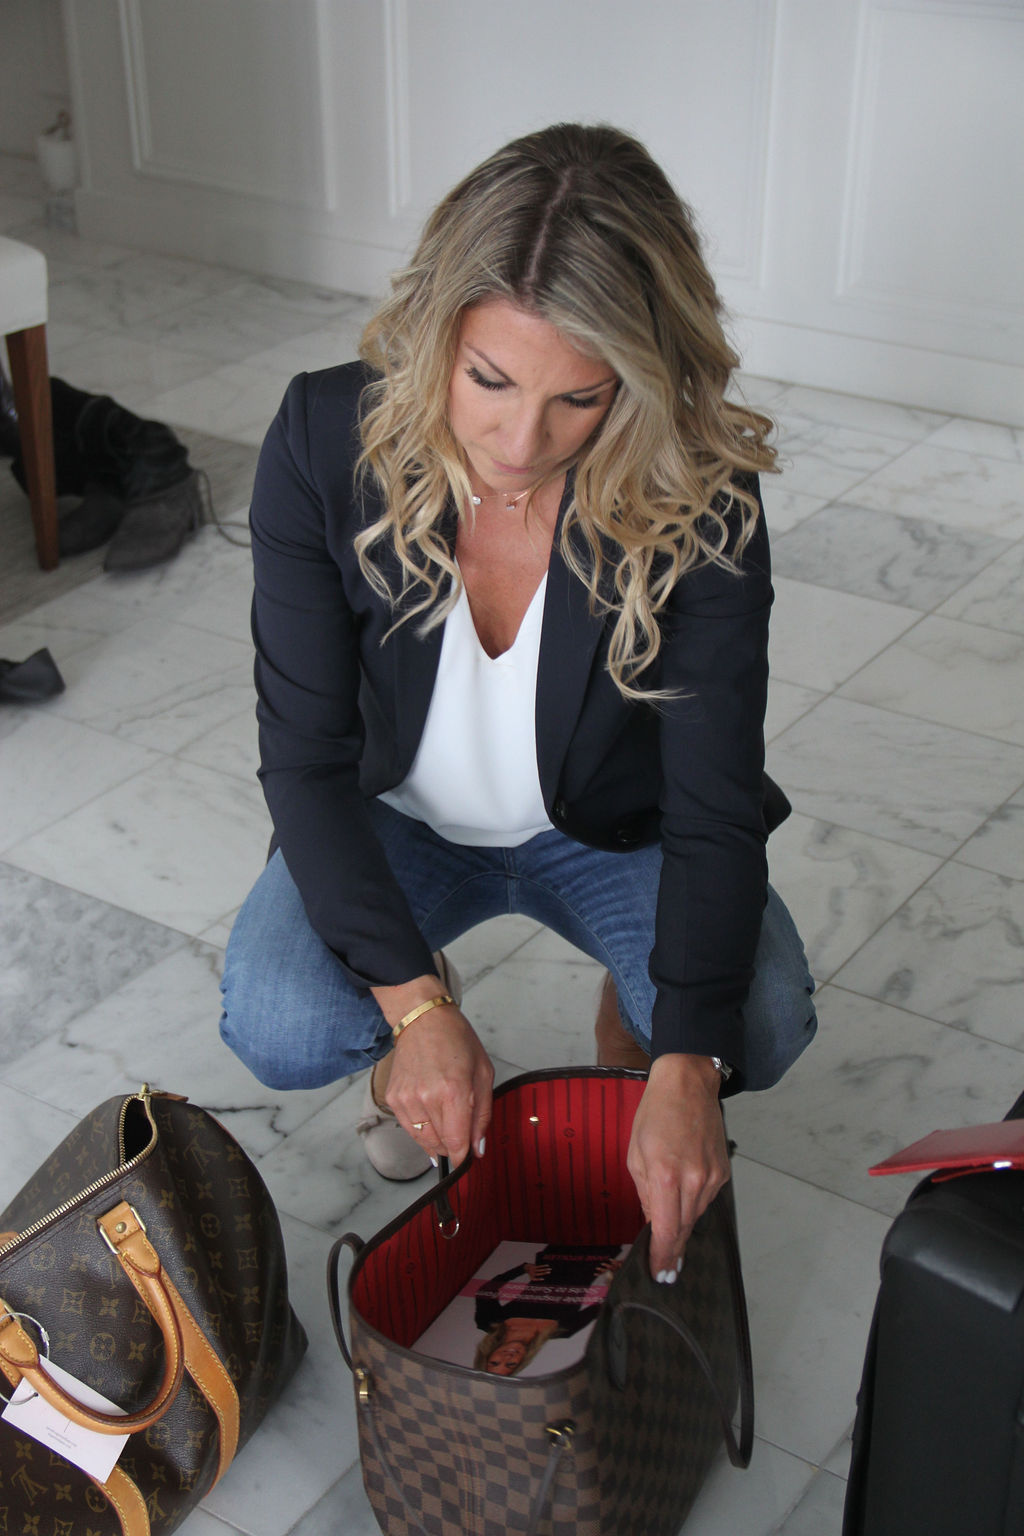 Stuck on how to organize your shoes and handbags? I'm giving some quick and easy tips to help you get started. -